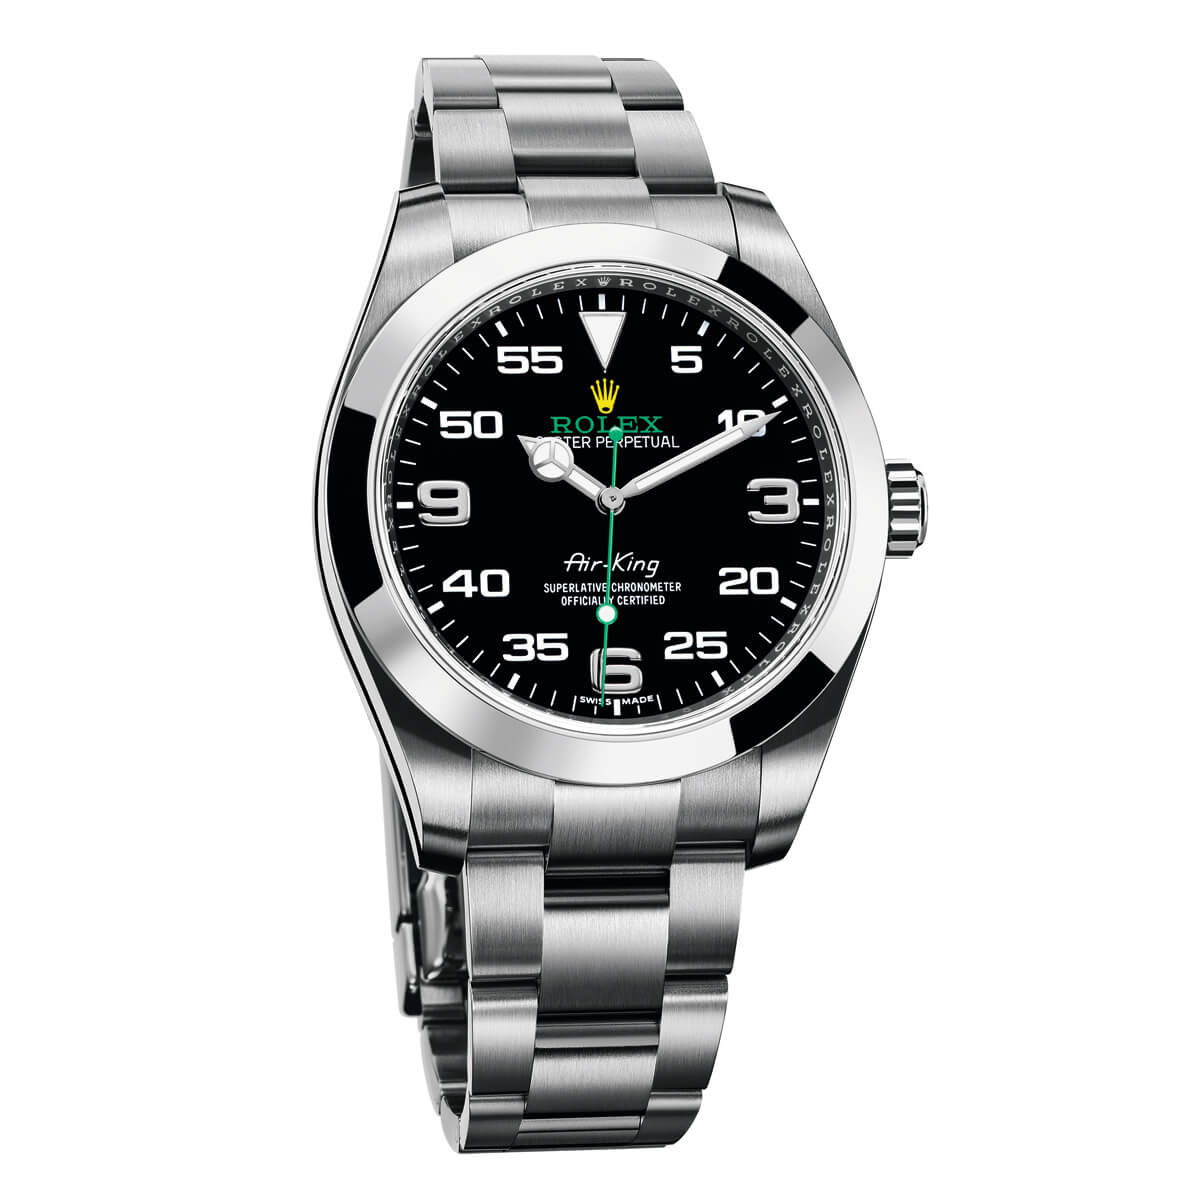 Rolex Oyster Perpetual Professional Air-King